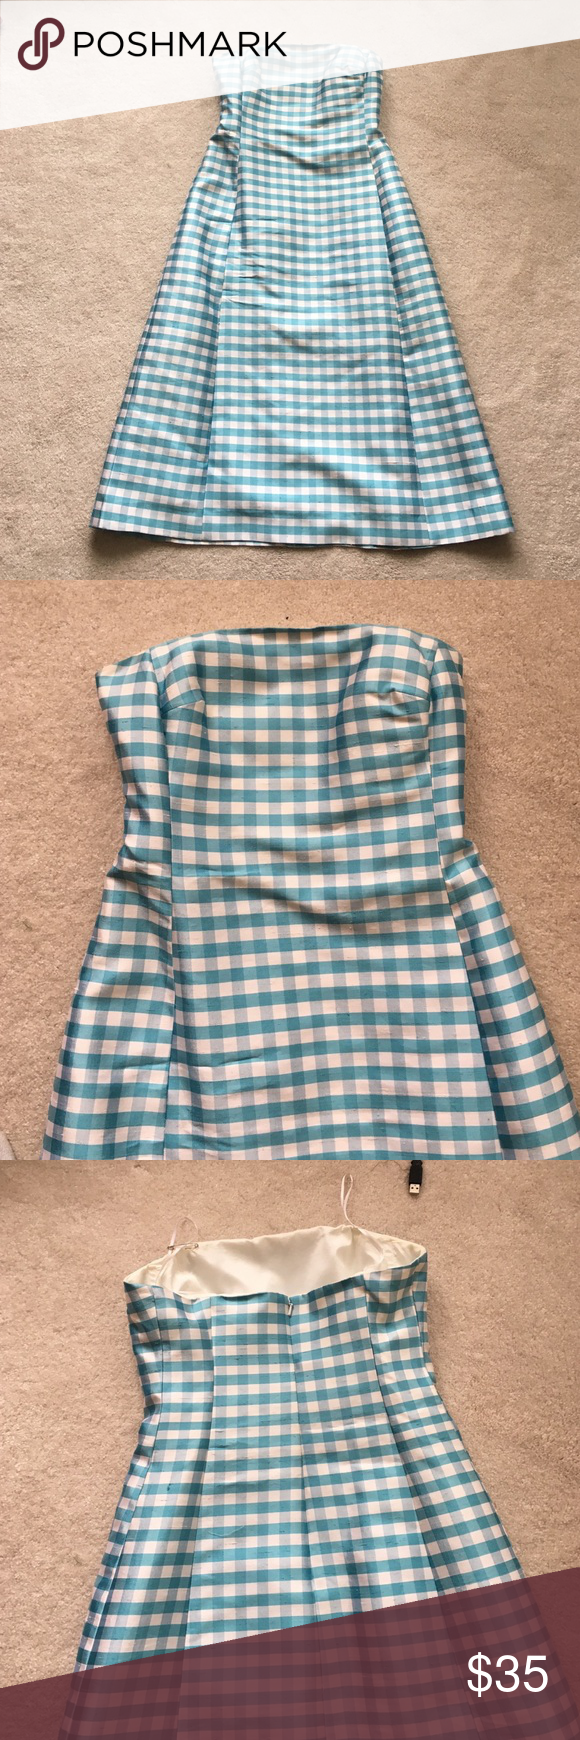 RL silk shantung dress Beautiful gingham check turquoise and white Ralph Lauren strapless silk tea length  dress. Only worn 2x - sadly too small. Interior shelf bra - excellent condition. Ralph Lauren Dresses Strapless